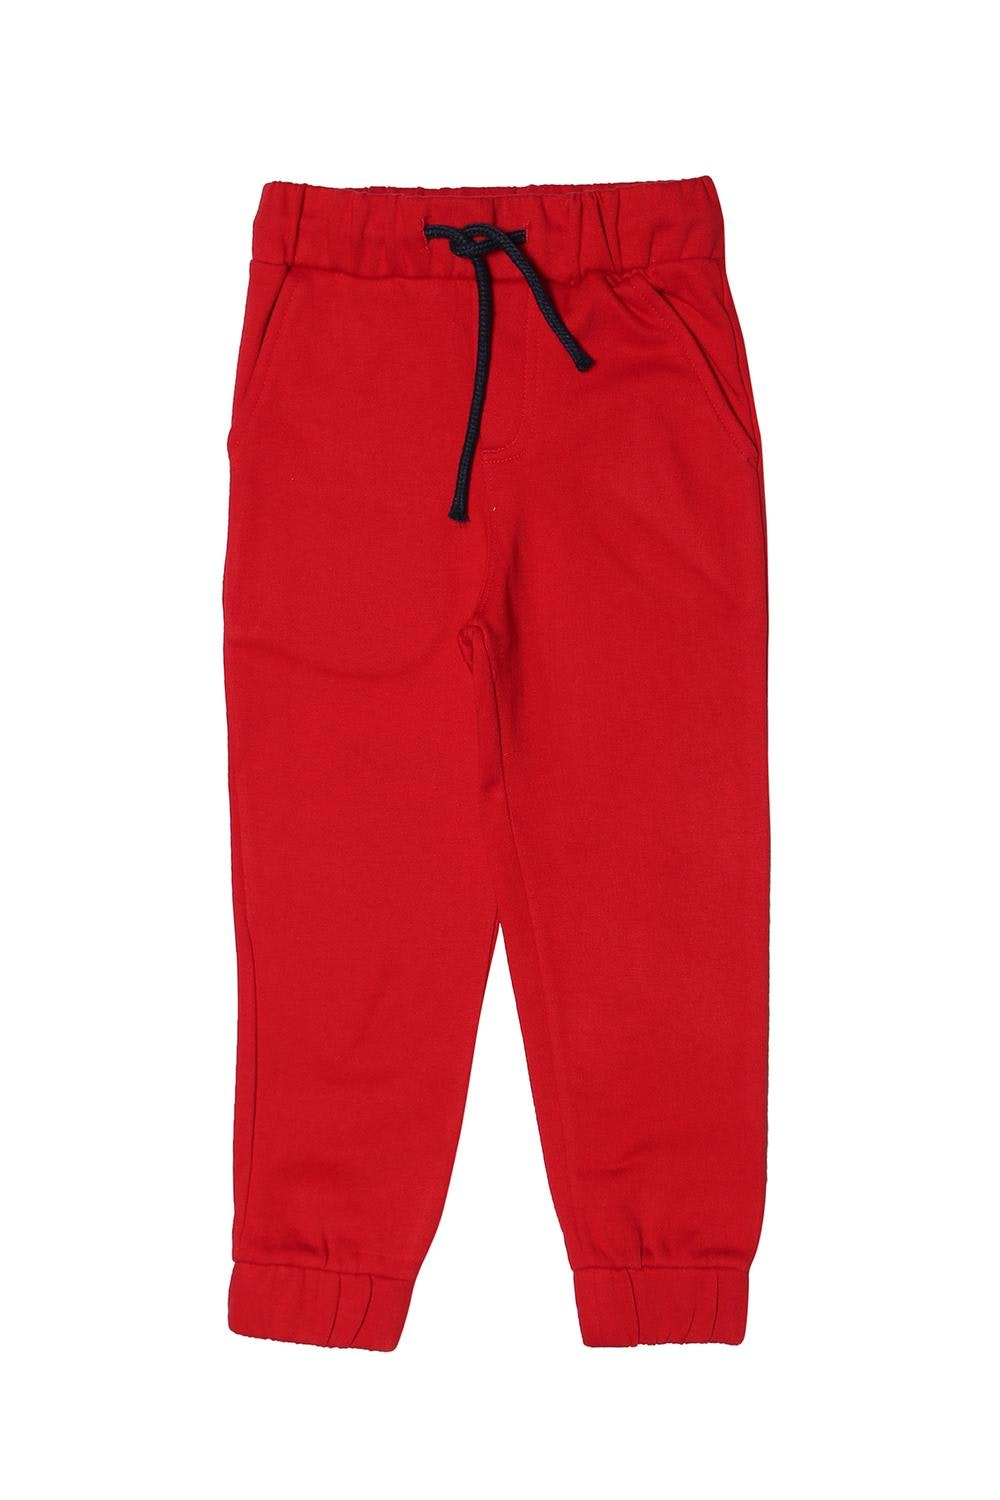 59667a31 Allen Solly Junior Bottoms, Allen Solly Red Track Pants for Boys at ...